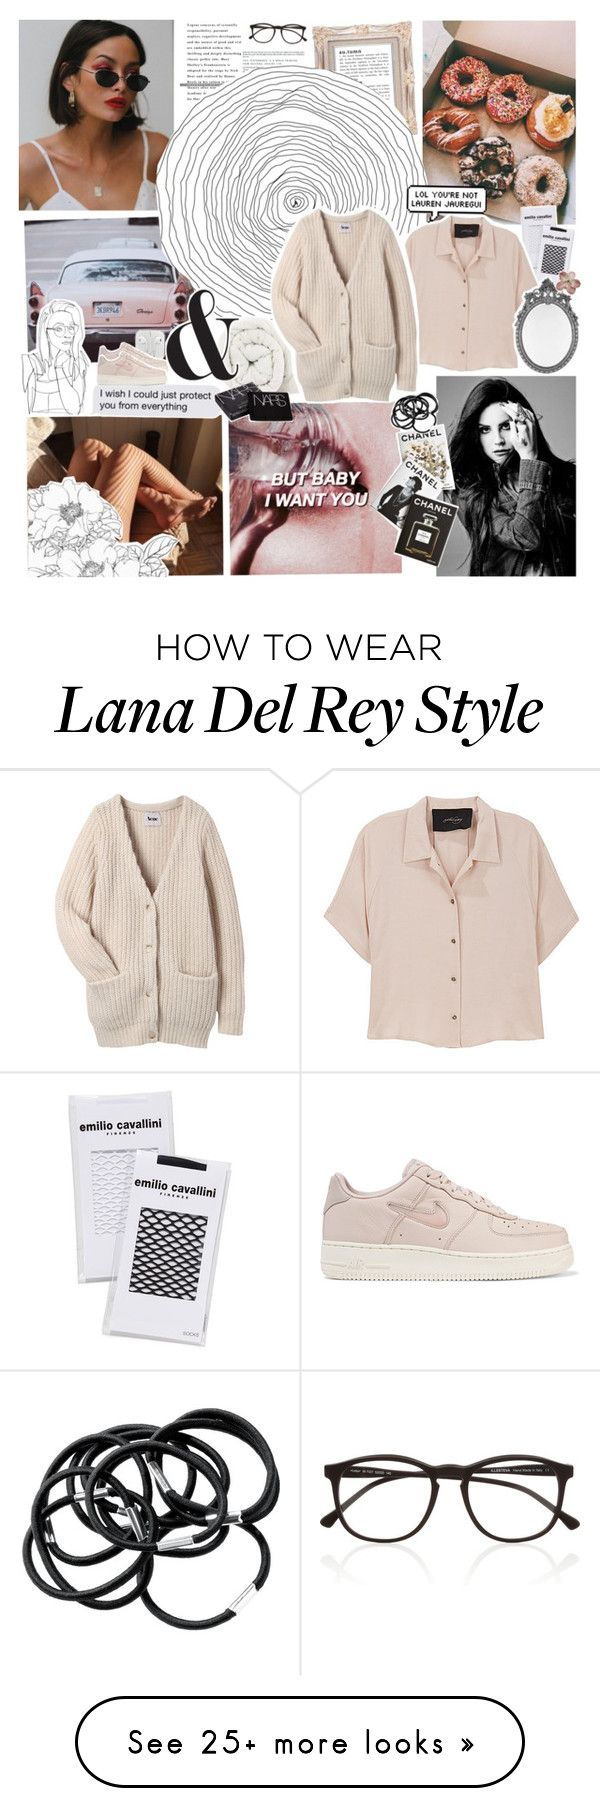 """""""won't you say these are the best of our days"""" by h-eartstrings on Polyvore featuring Emilio Cavallini, Rachel Comey, Acne Studios, Illesteva, NIKE, NARS Cosmetics, Assouline Publishing, H&M, living room and marias5k"""